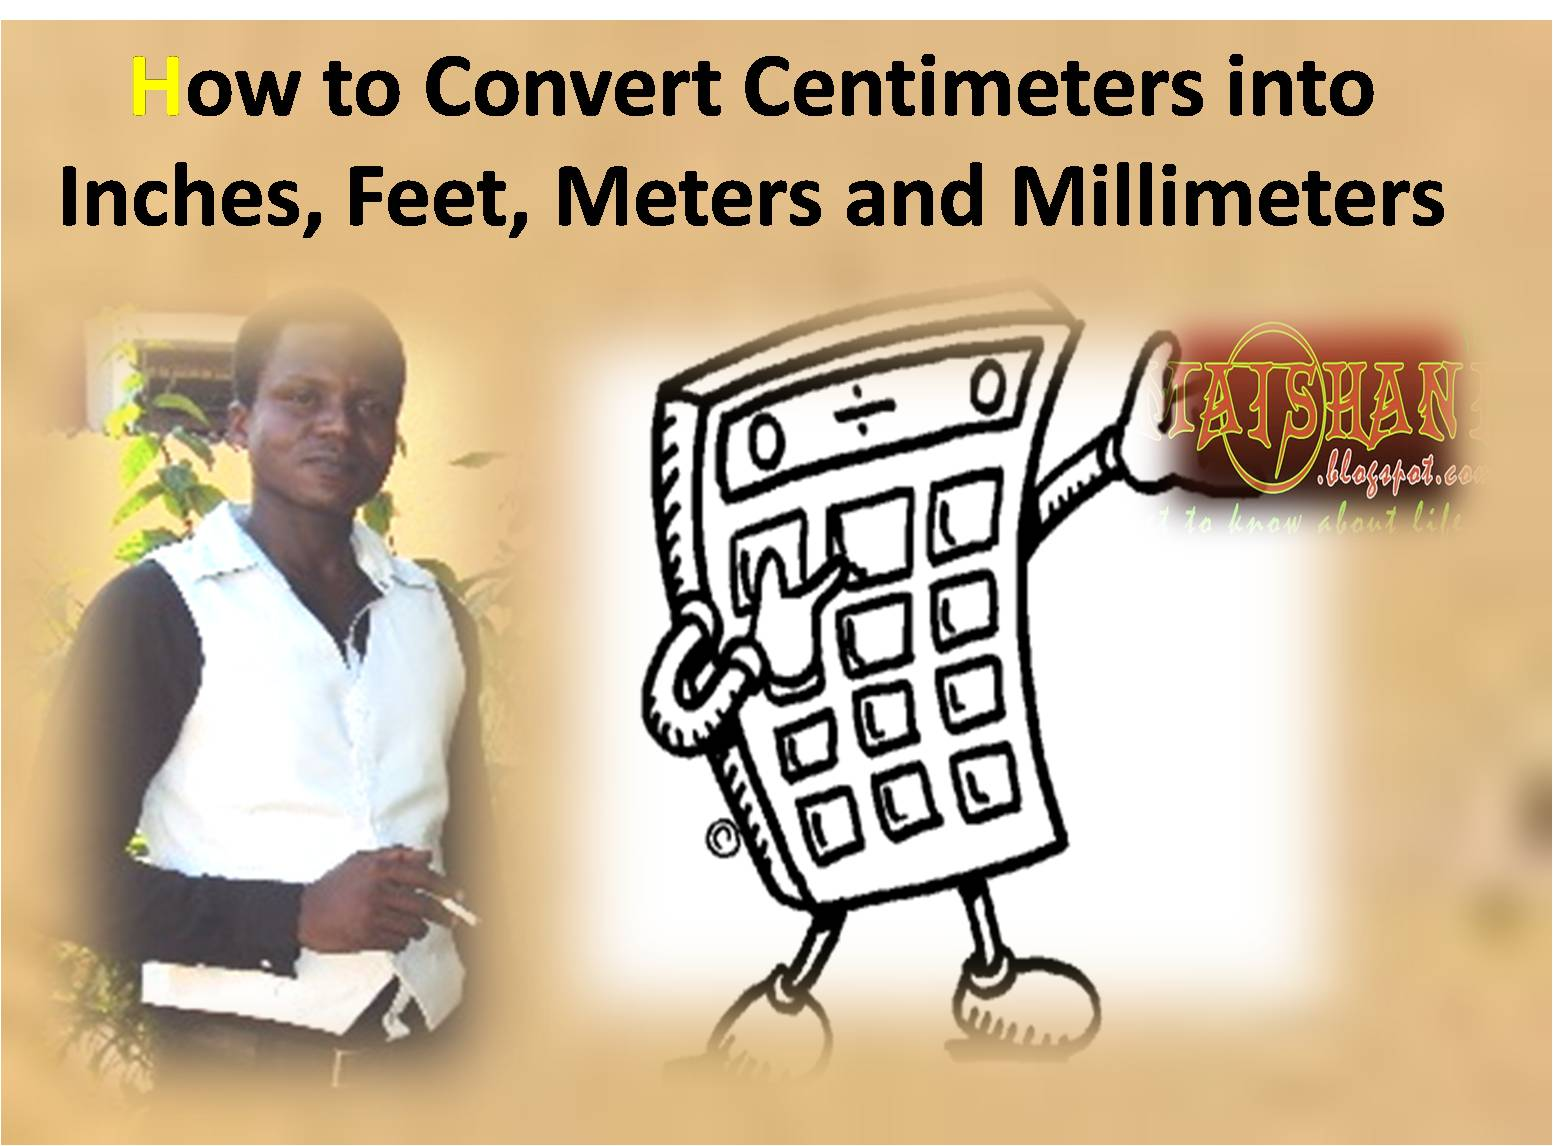 Maisha How To Convert Centimeters Into Inches Feet